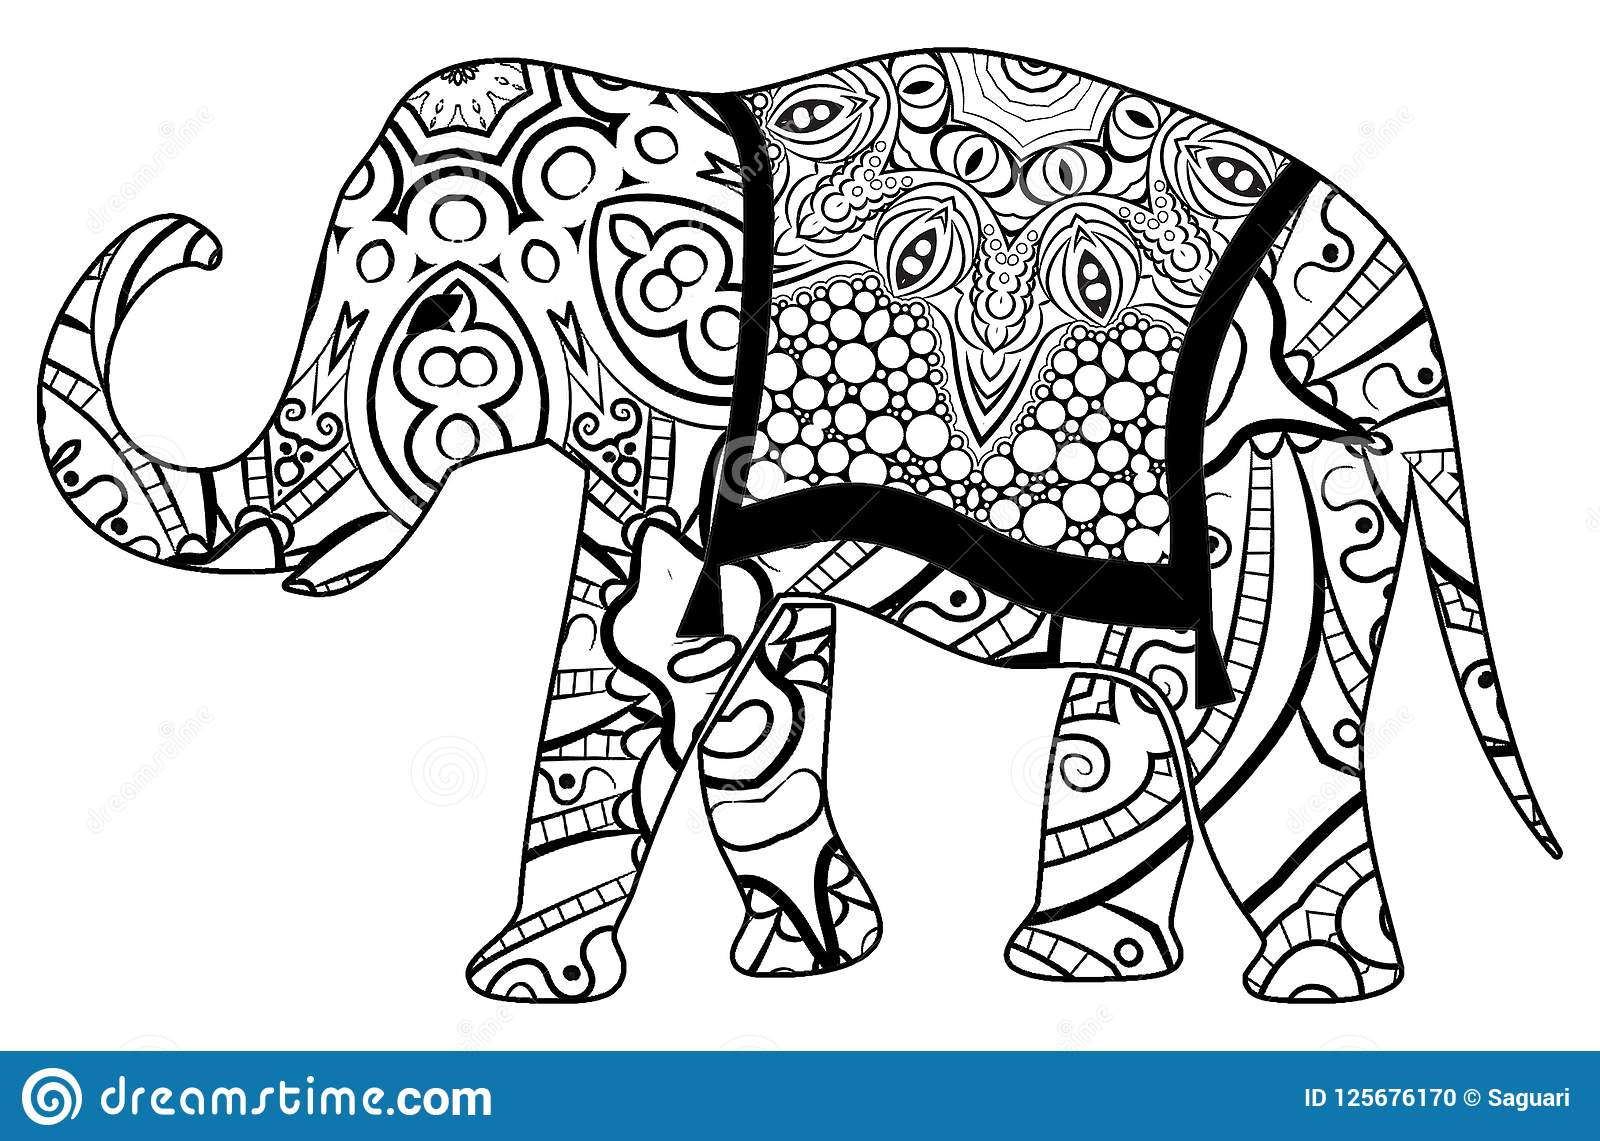 Colorful Elephant Coloring For Children And Adults Stock ...